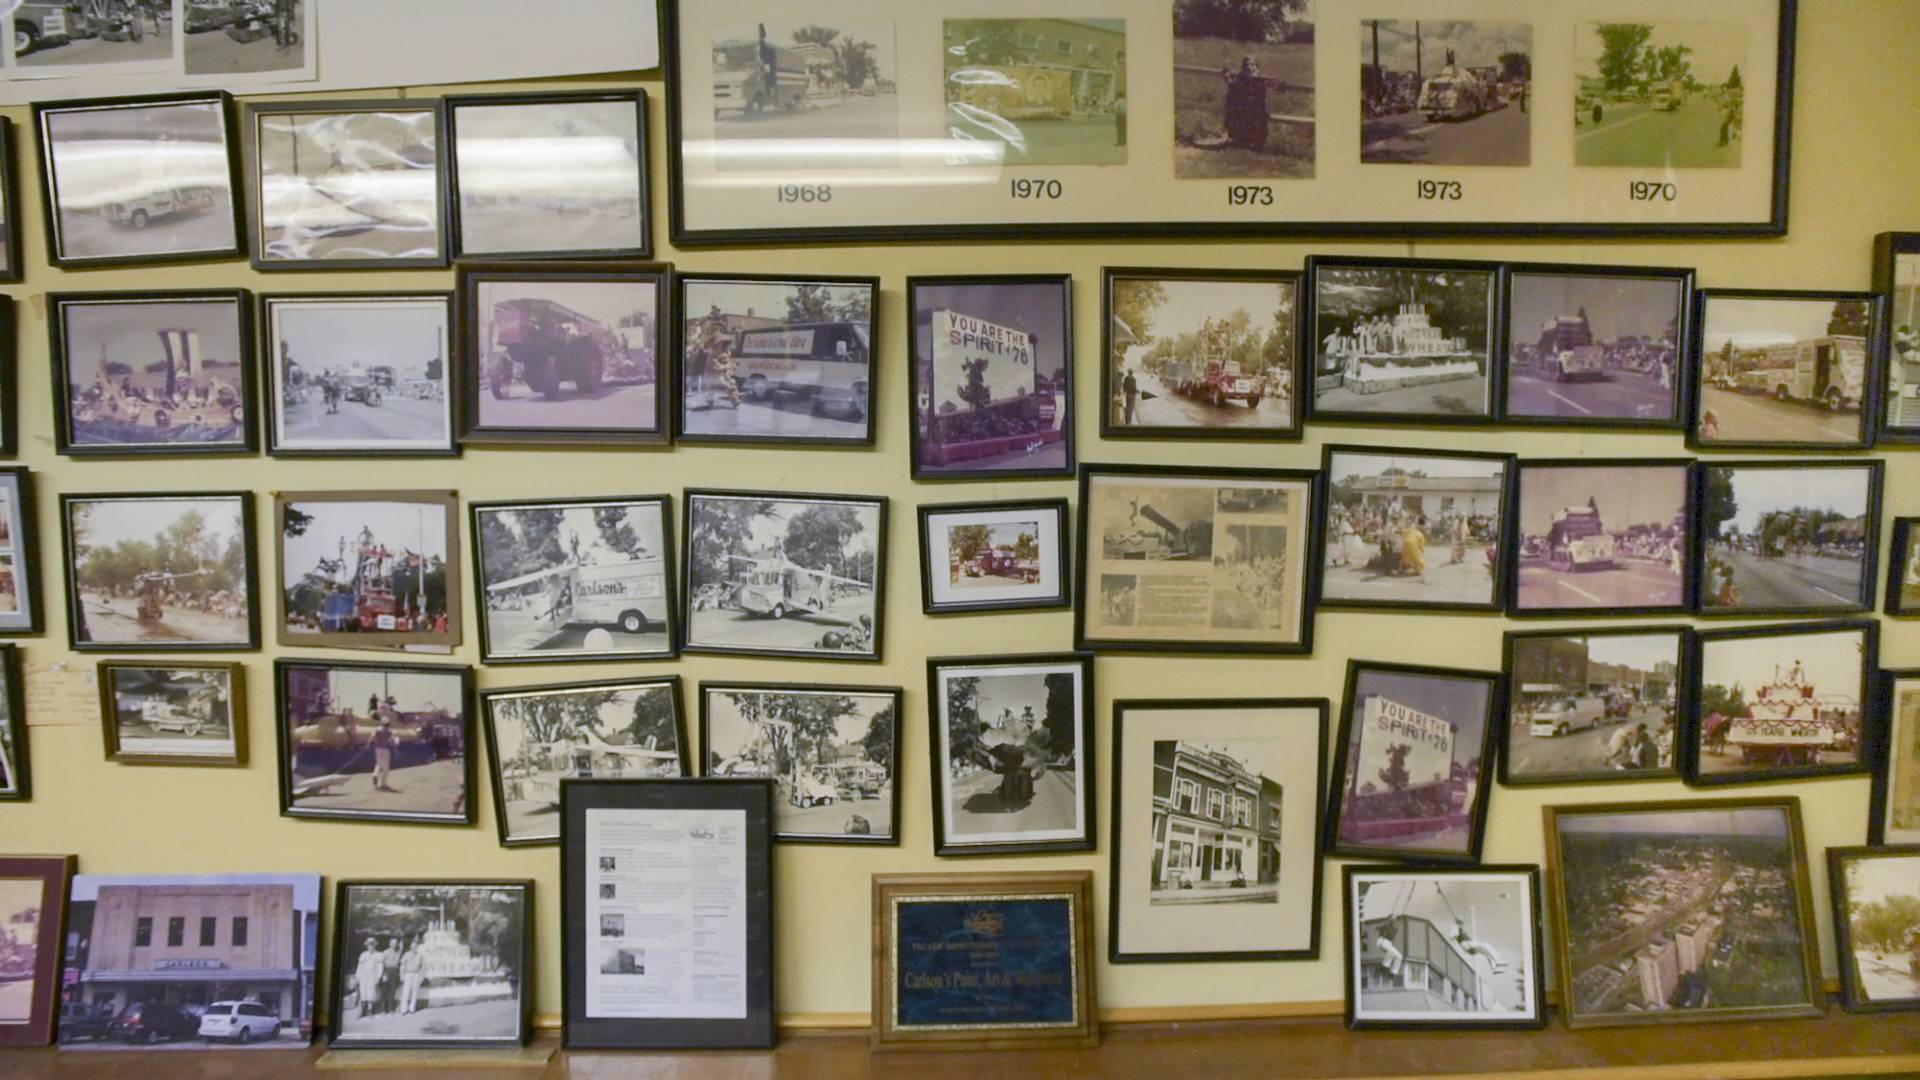 A room above the Carlson Paint, Glass & Art Store in downtown Wheaton is filled with old photographs of the Carlson family's Independence Day parade floats.